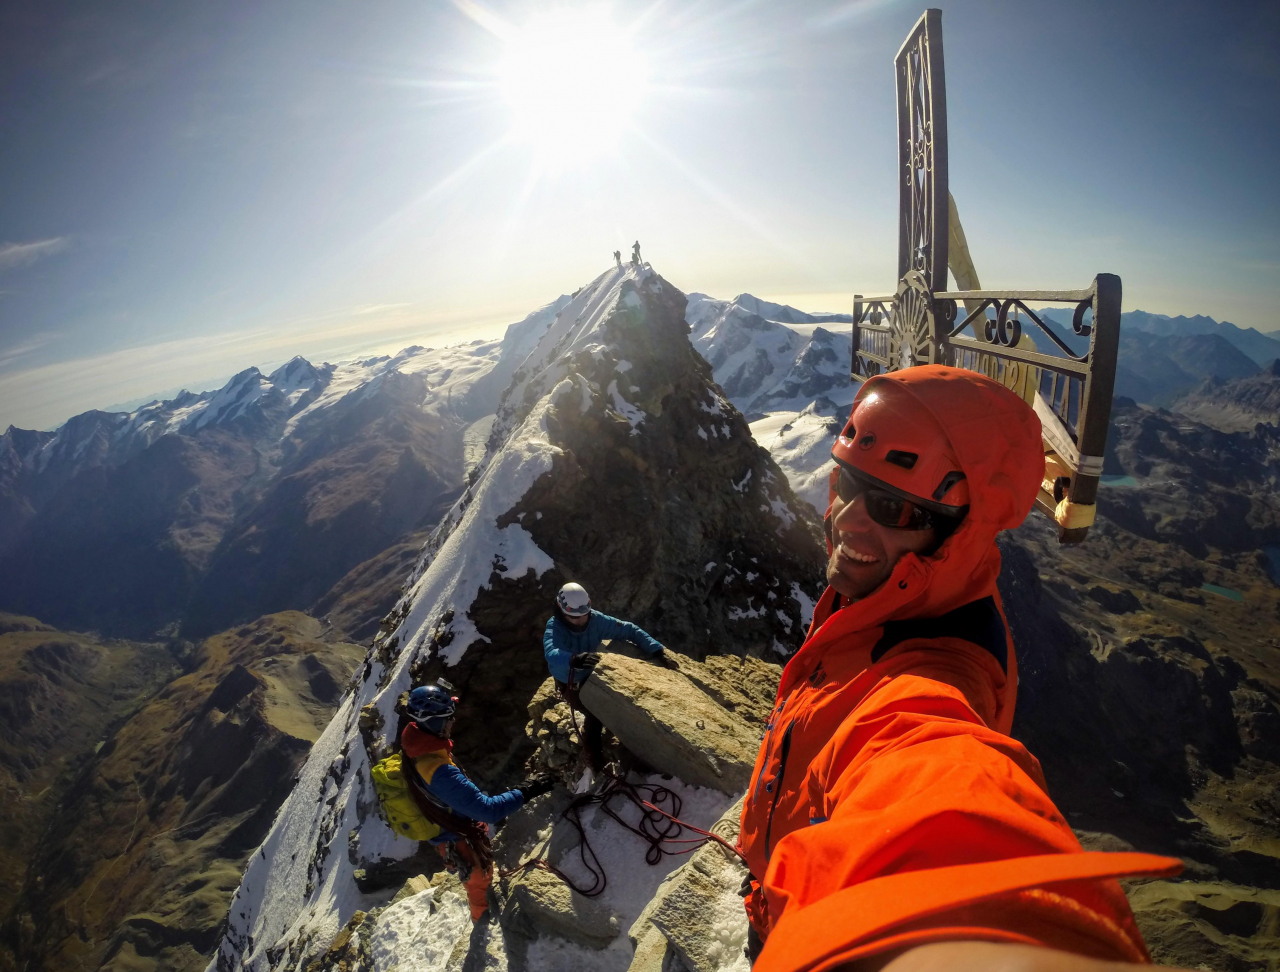 A picture from Matterhorn by Jozef Ďuronka